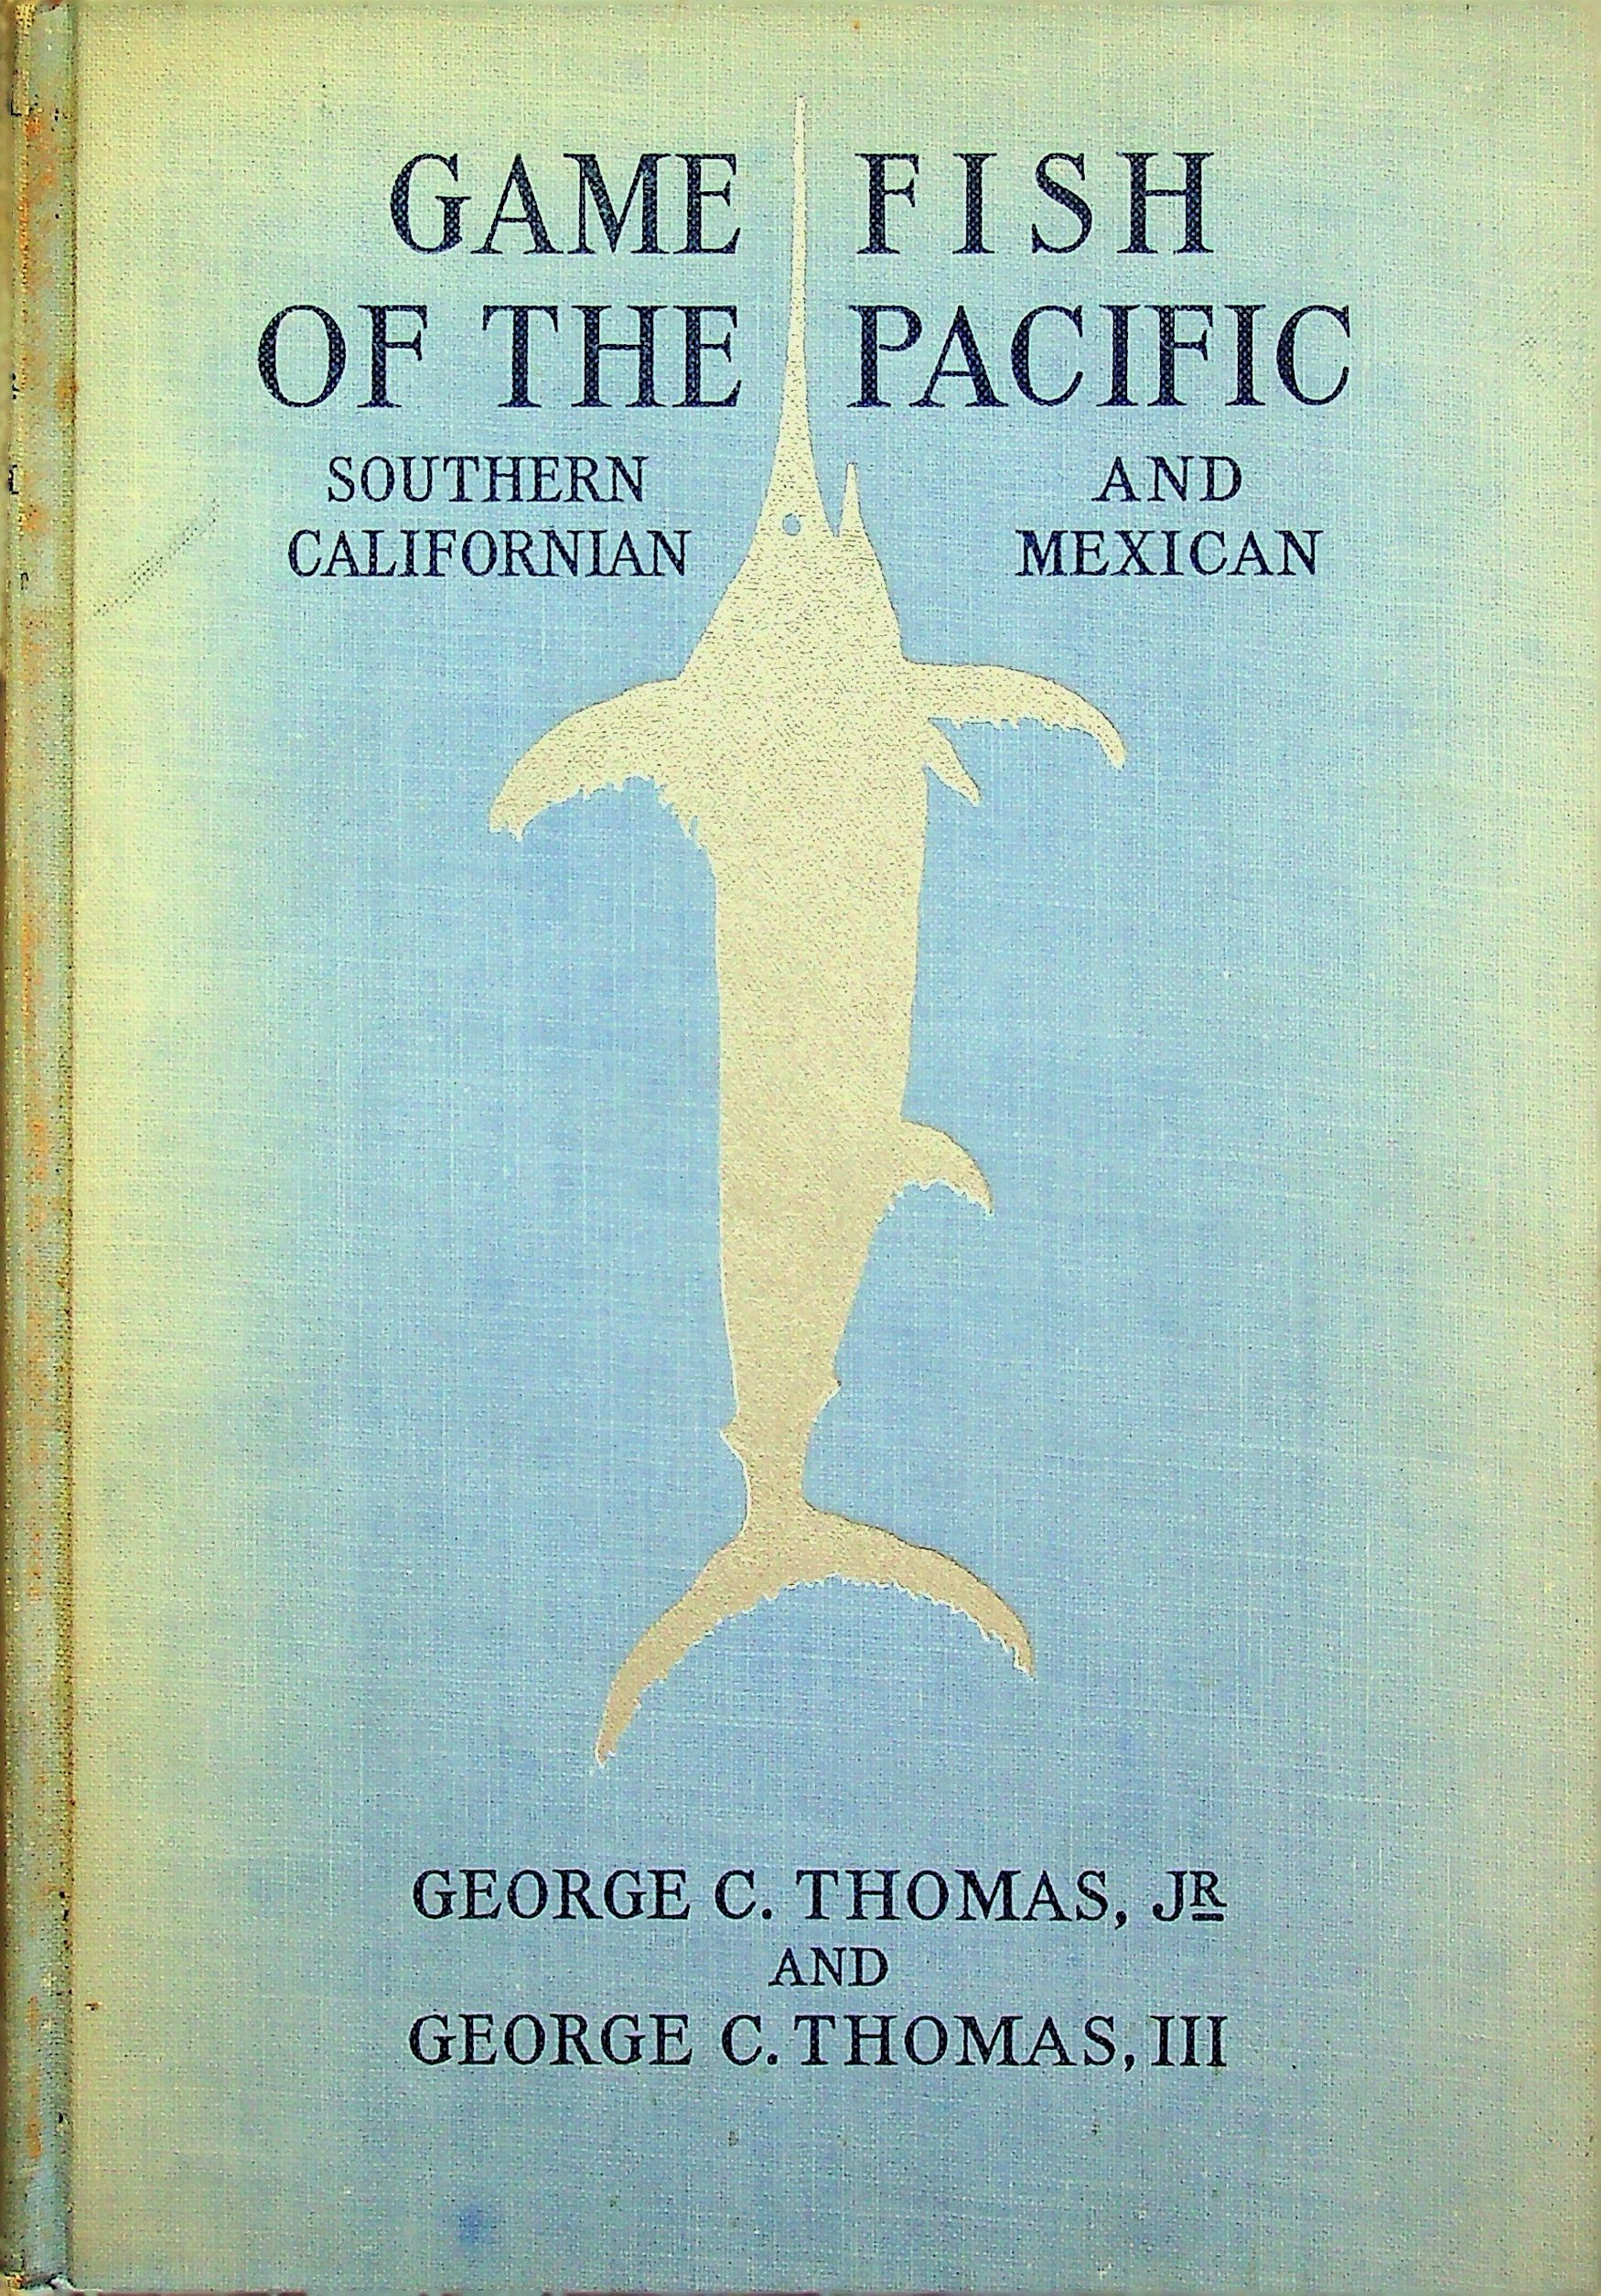 Image for Game fish of the Pacific: Southern Californian and Mexican